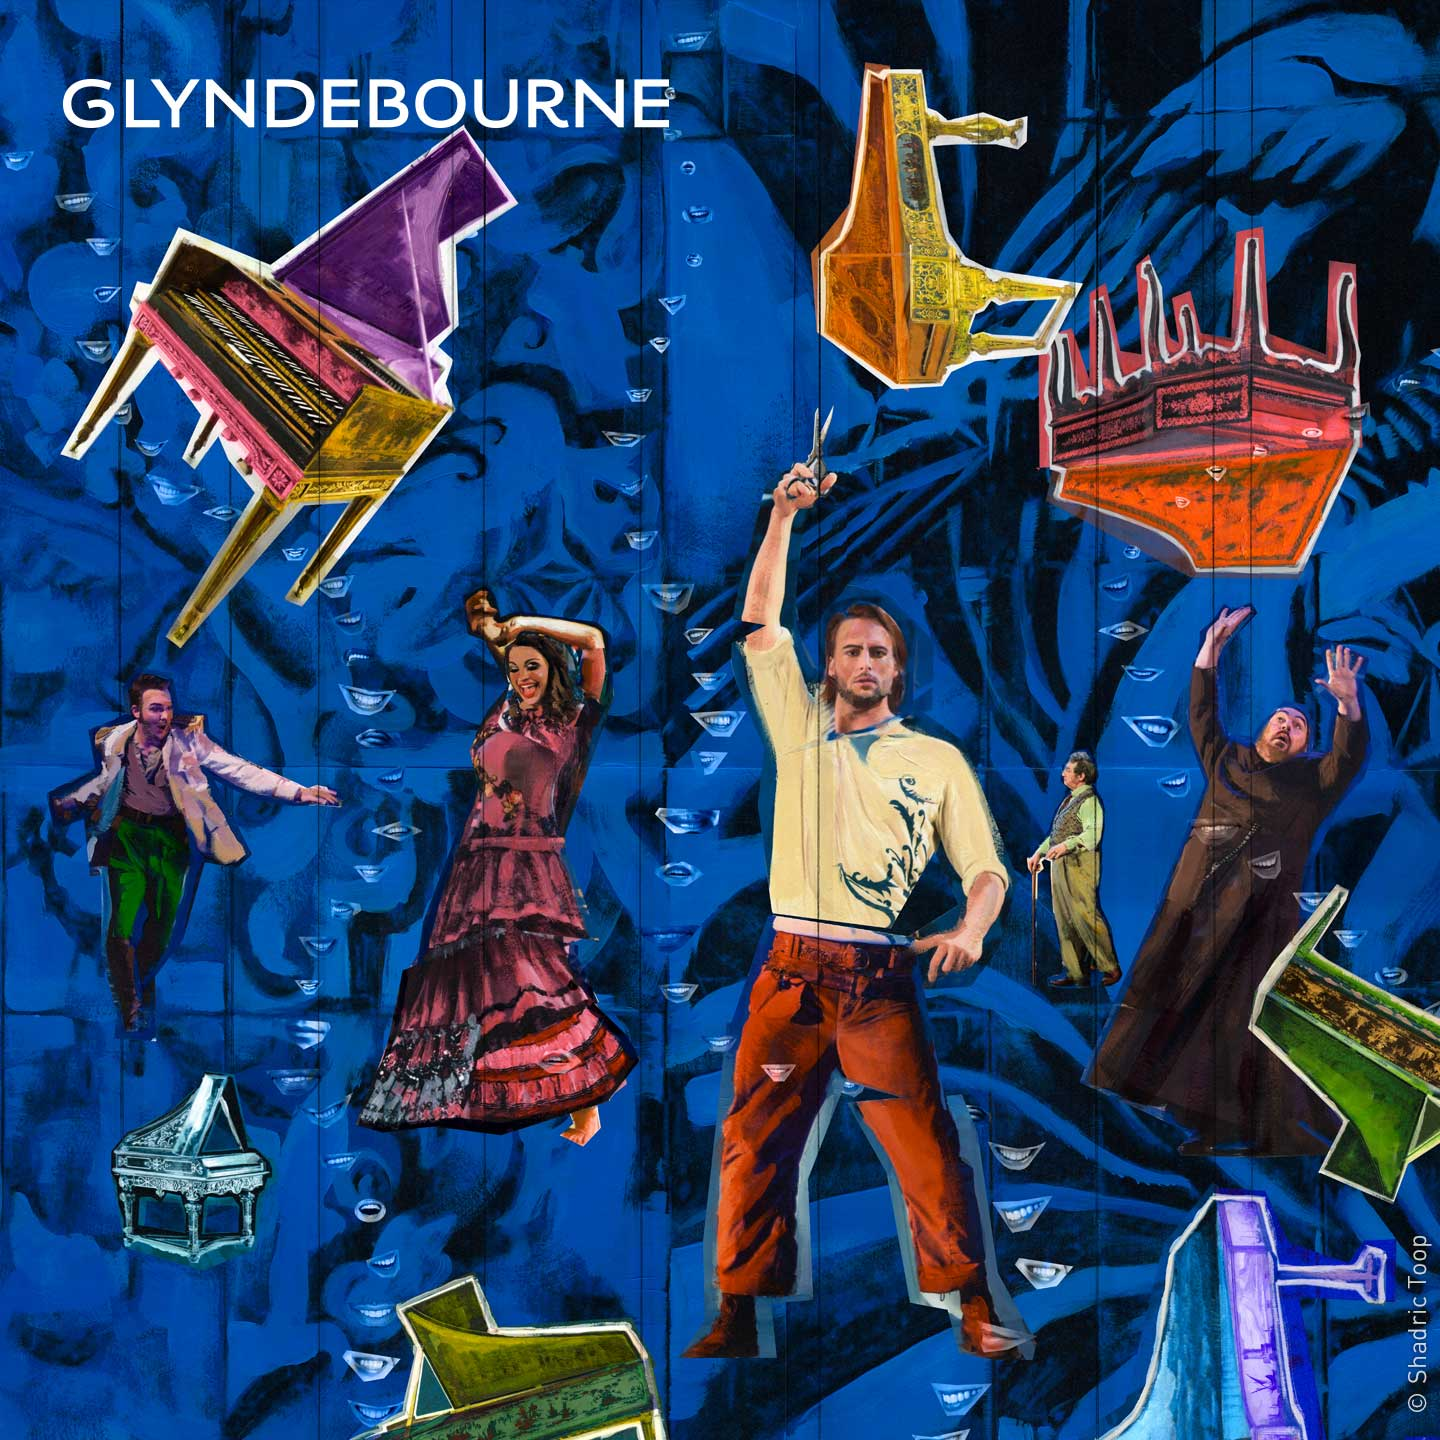 Glyndebourne Festival 2019 Il barbiere di Siviglia illustration showing characters from the opera with harpsichords